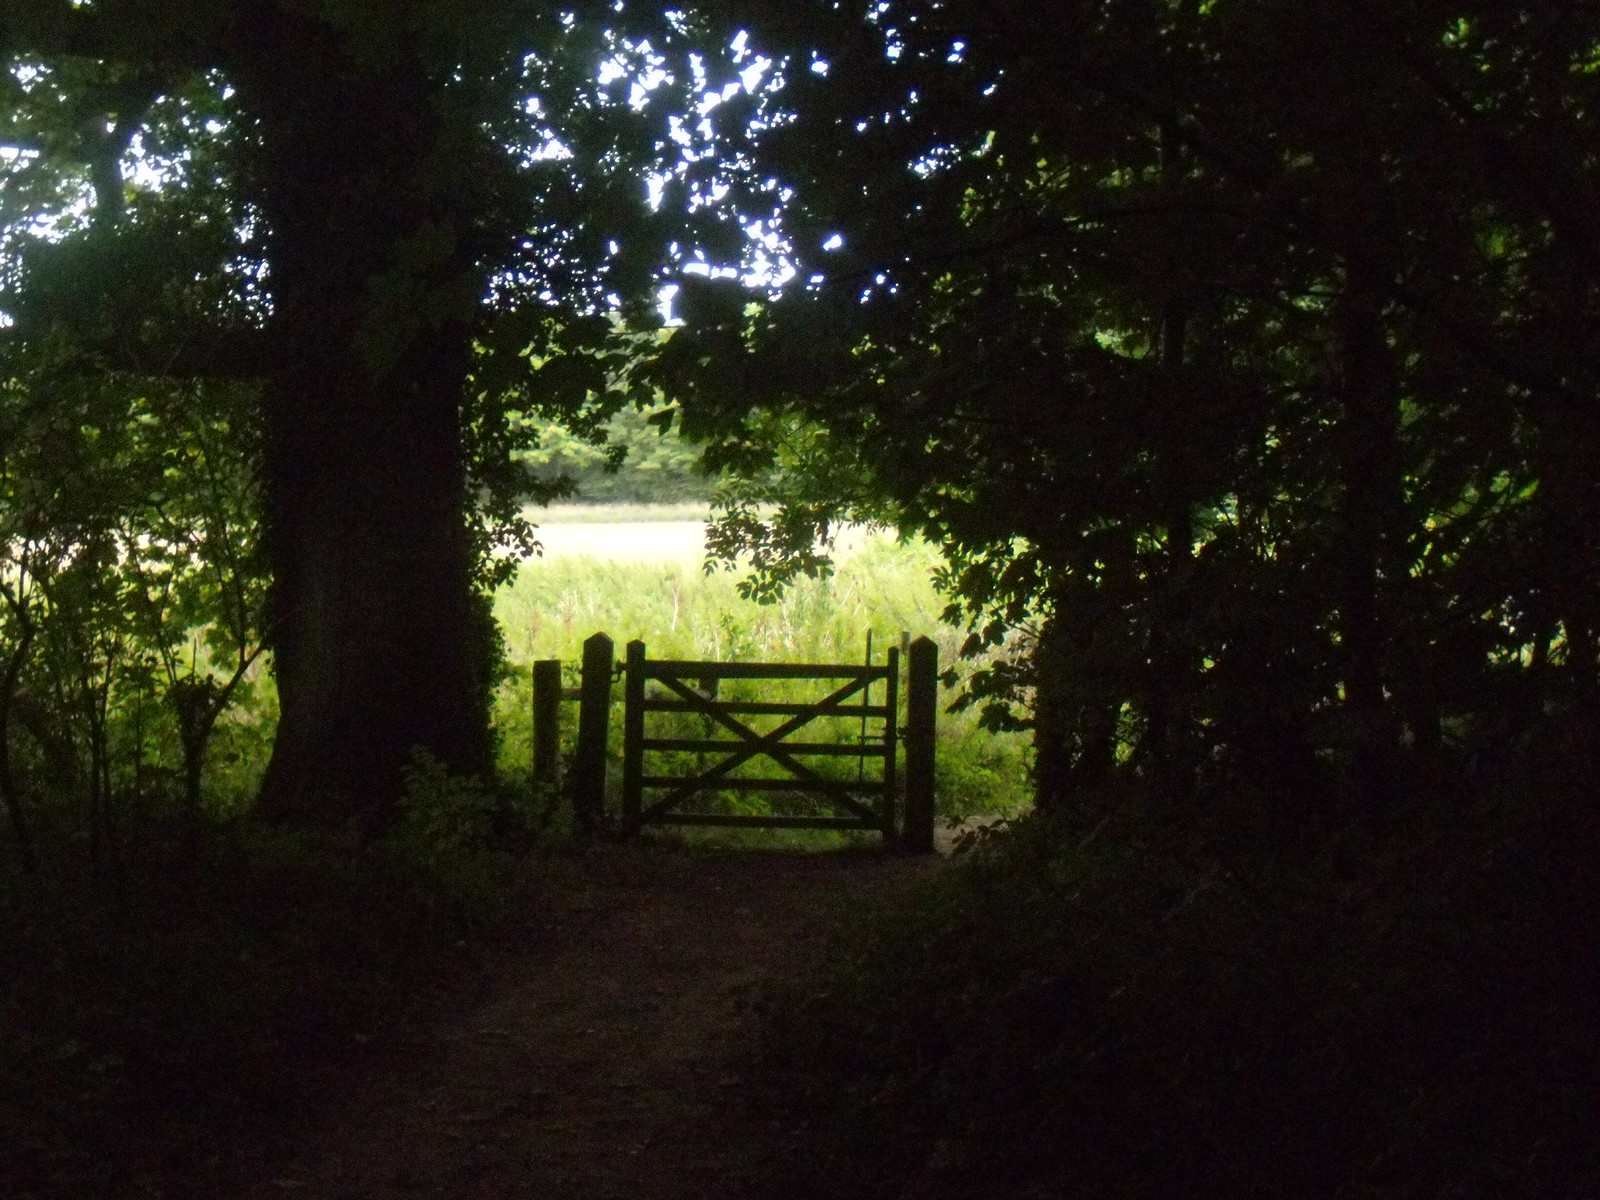 Gate out of the wood Hassocks to Brighton